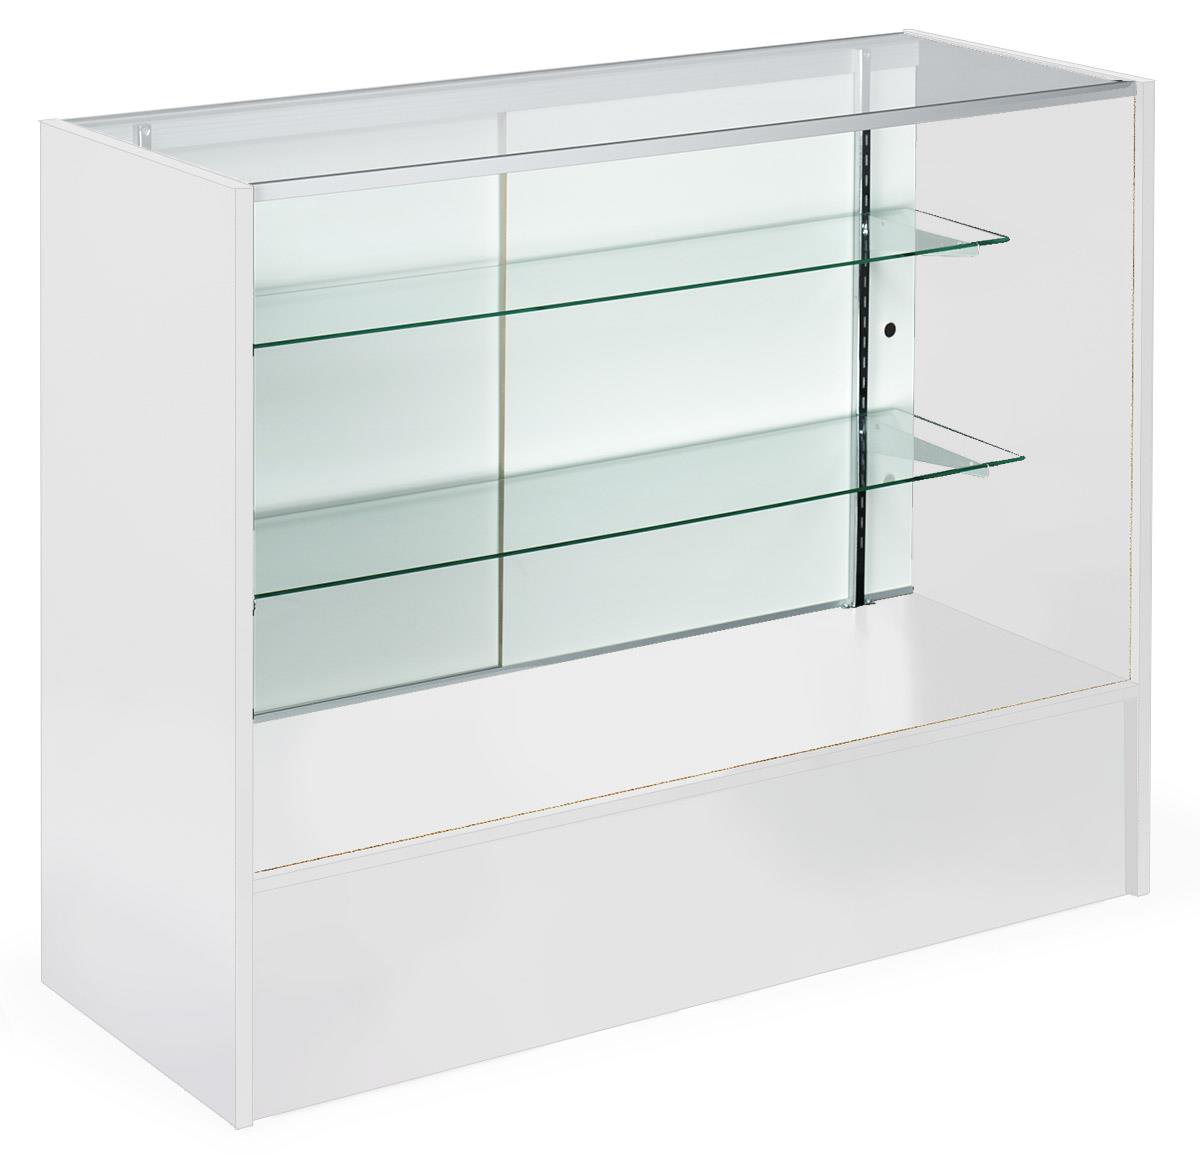 Showcases With Glass Shelves White Melamine Cabinet